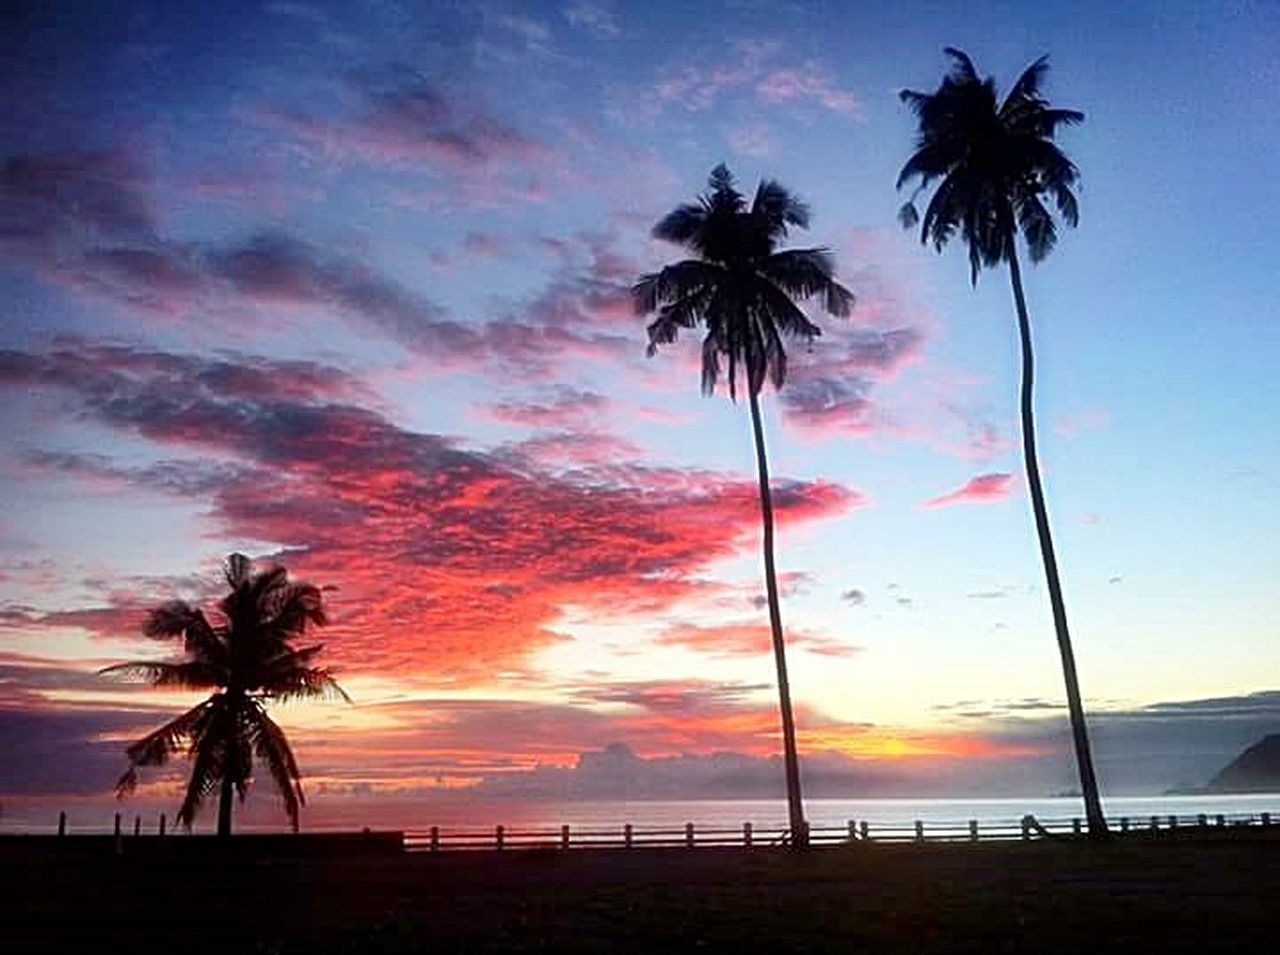 palm tree, silhouette, sunset, tree, cloud - sky, beach, sky, scenics, sea, tropical climate, tranquility, tranquil scene, beauty in nature, travel destinations, nature, no people, outdoors, day